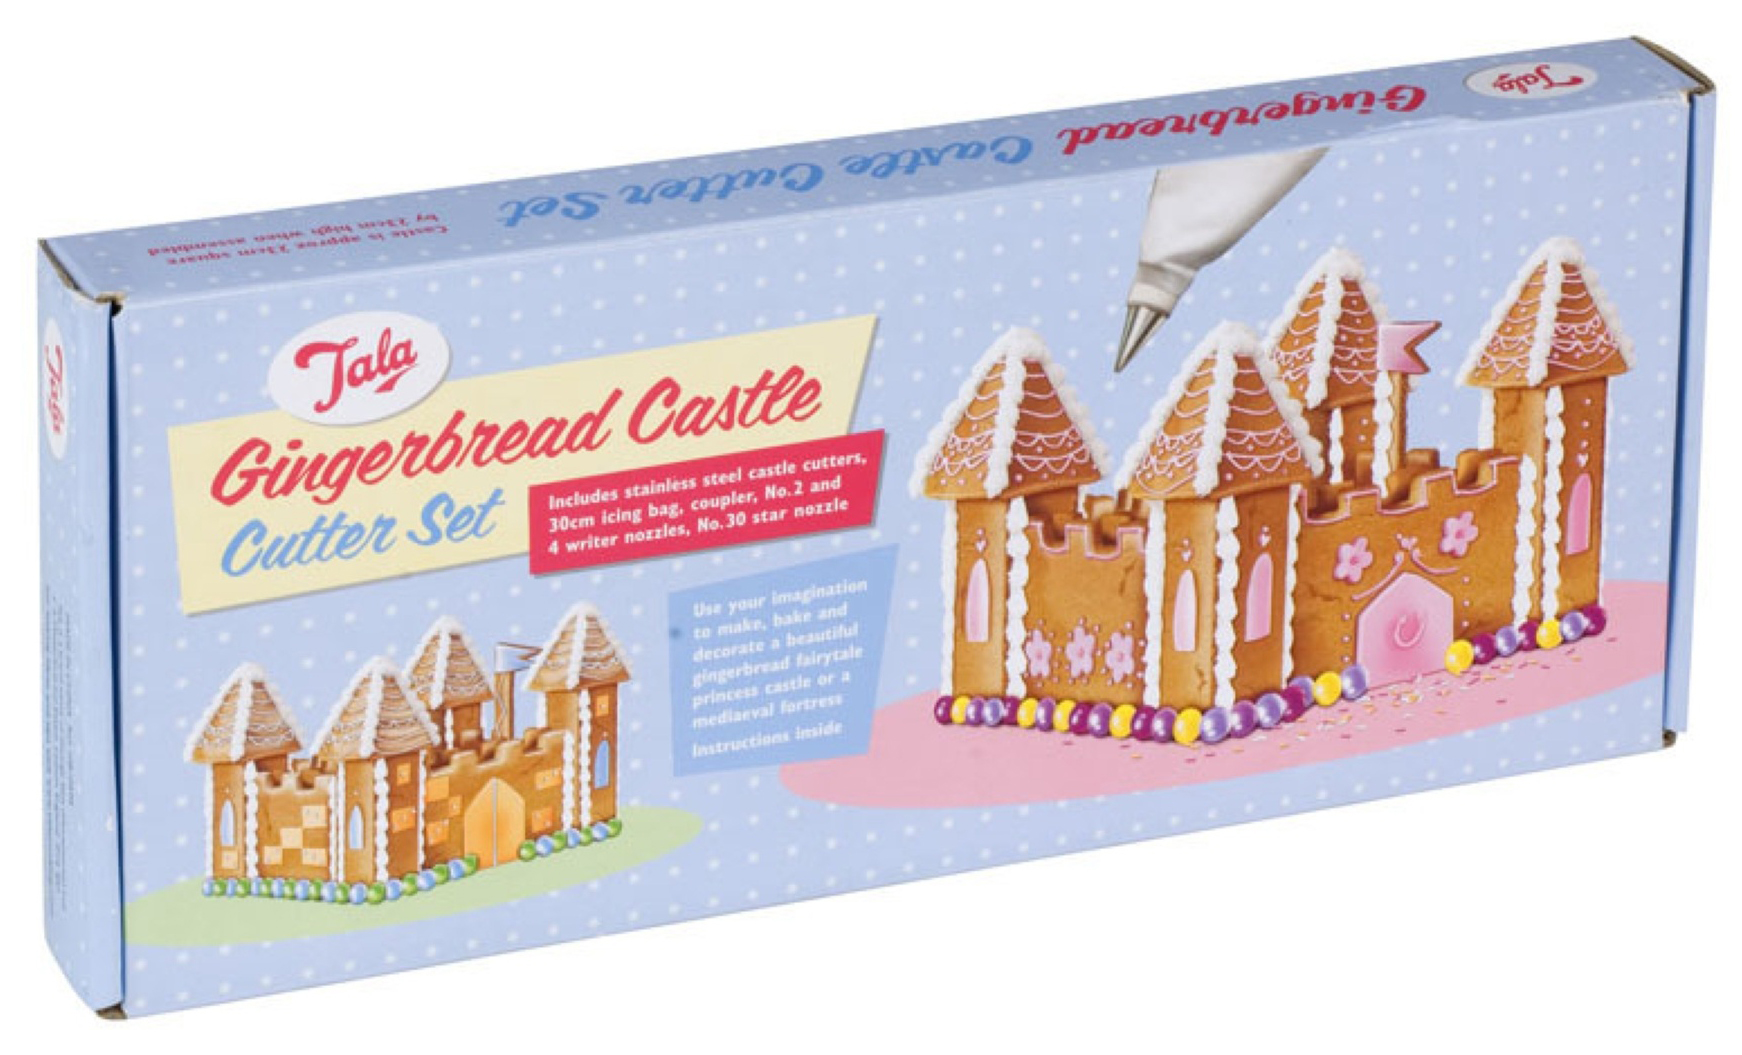 tala gingerbread castle cookie cutter set - online kitchenware